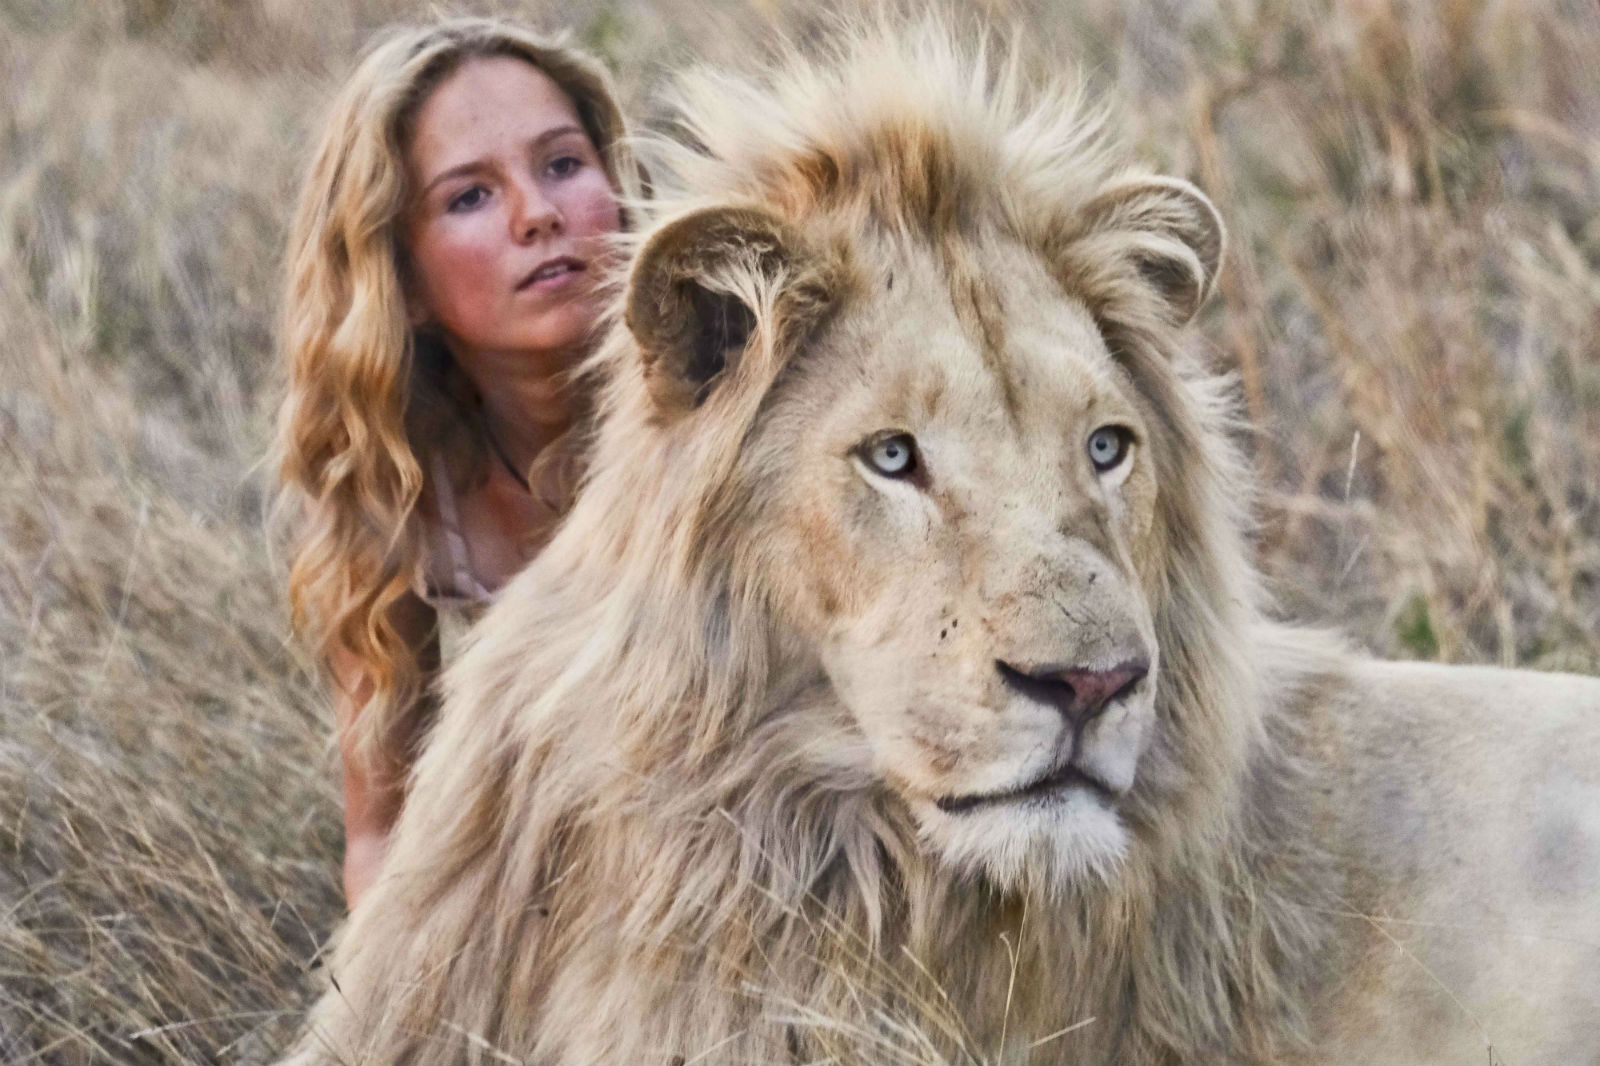 A scene from Mia and the White Lion.